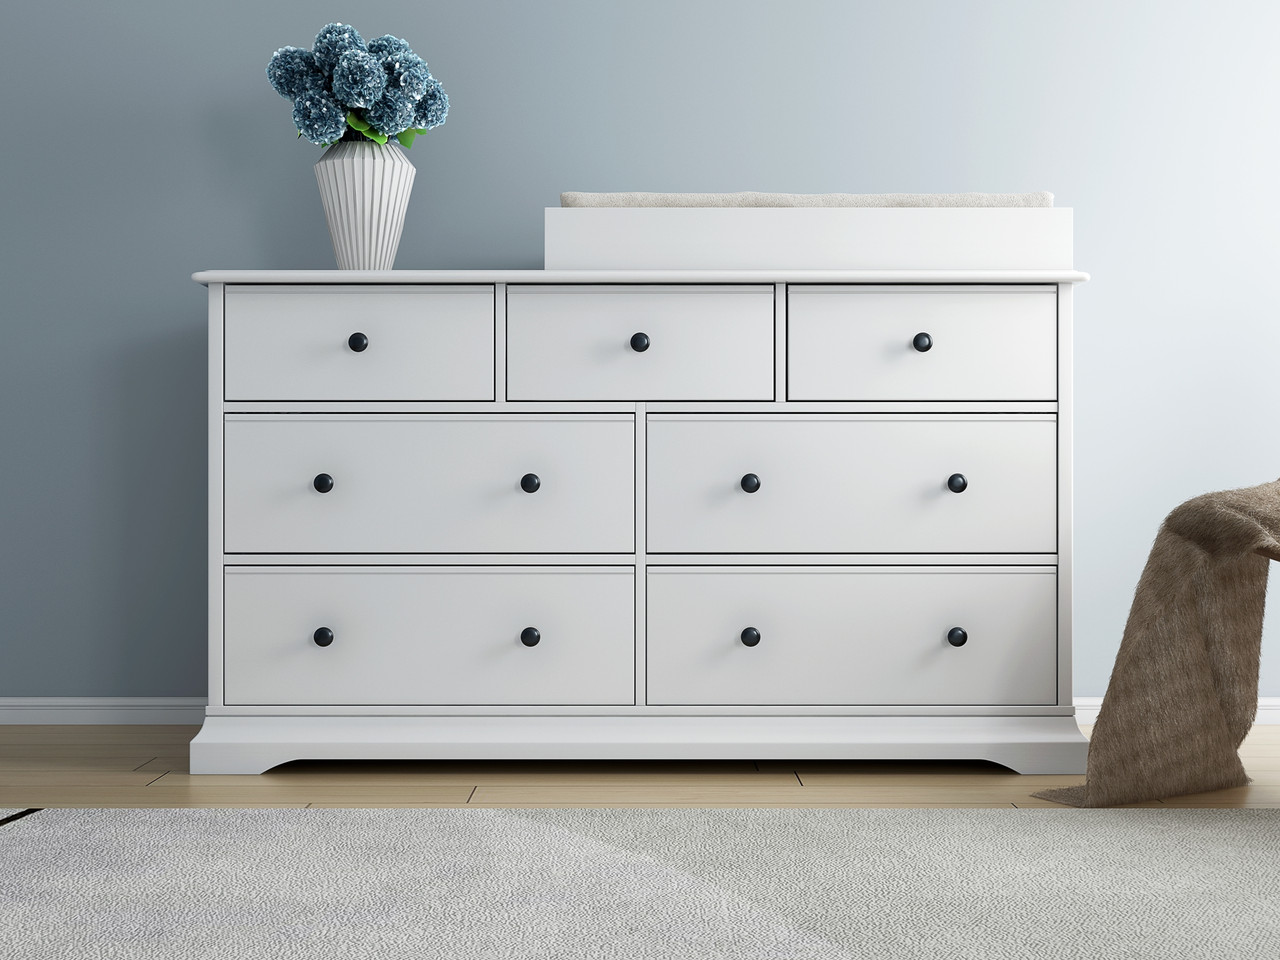 Picture of: Buy Baby Furniture From Online Store Australia Baby Change Table With Drawers